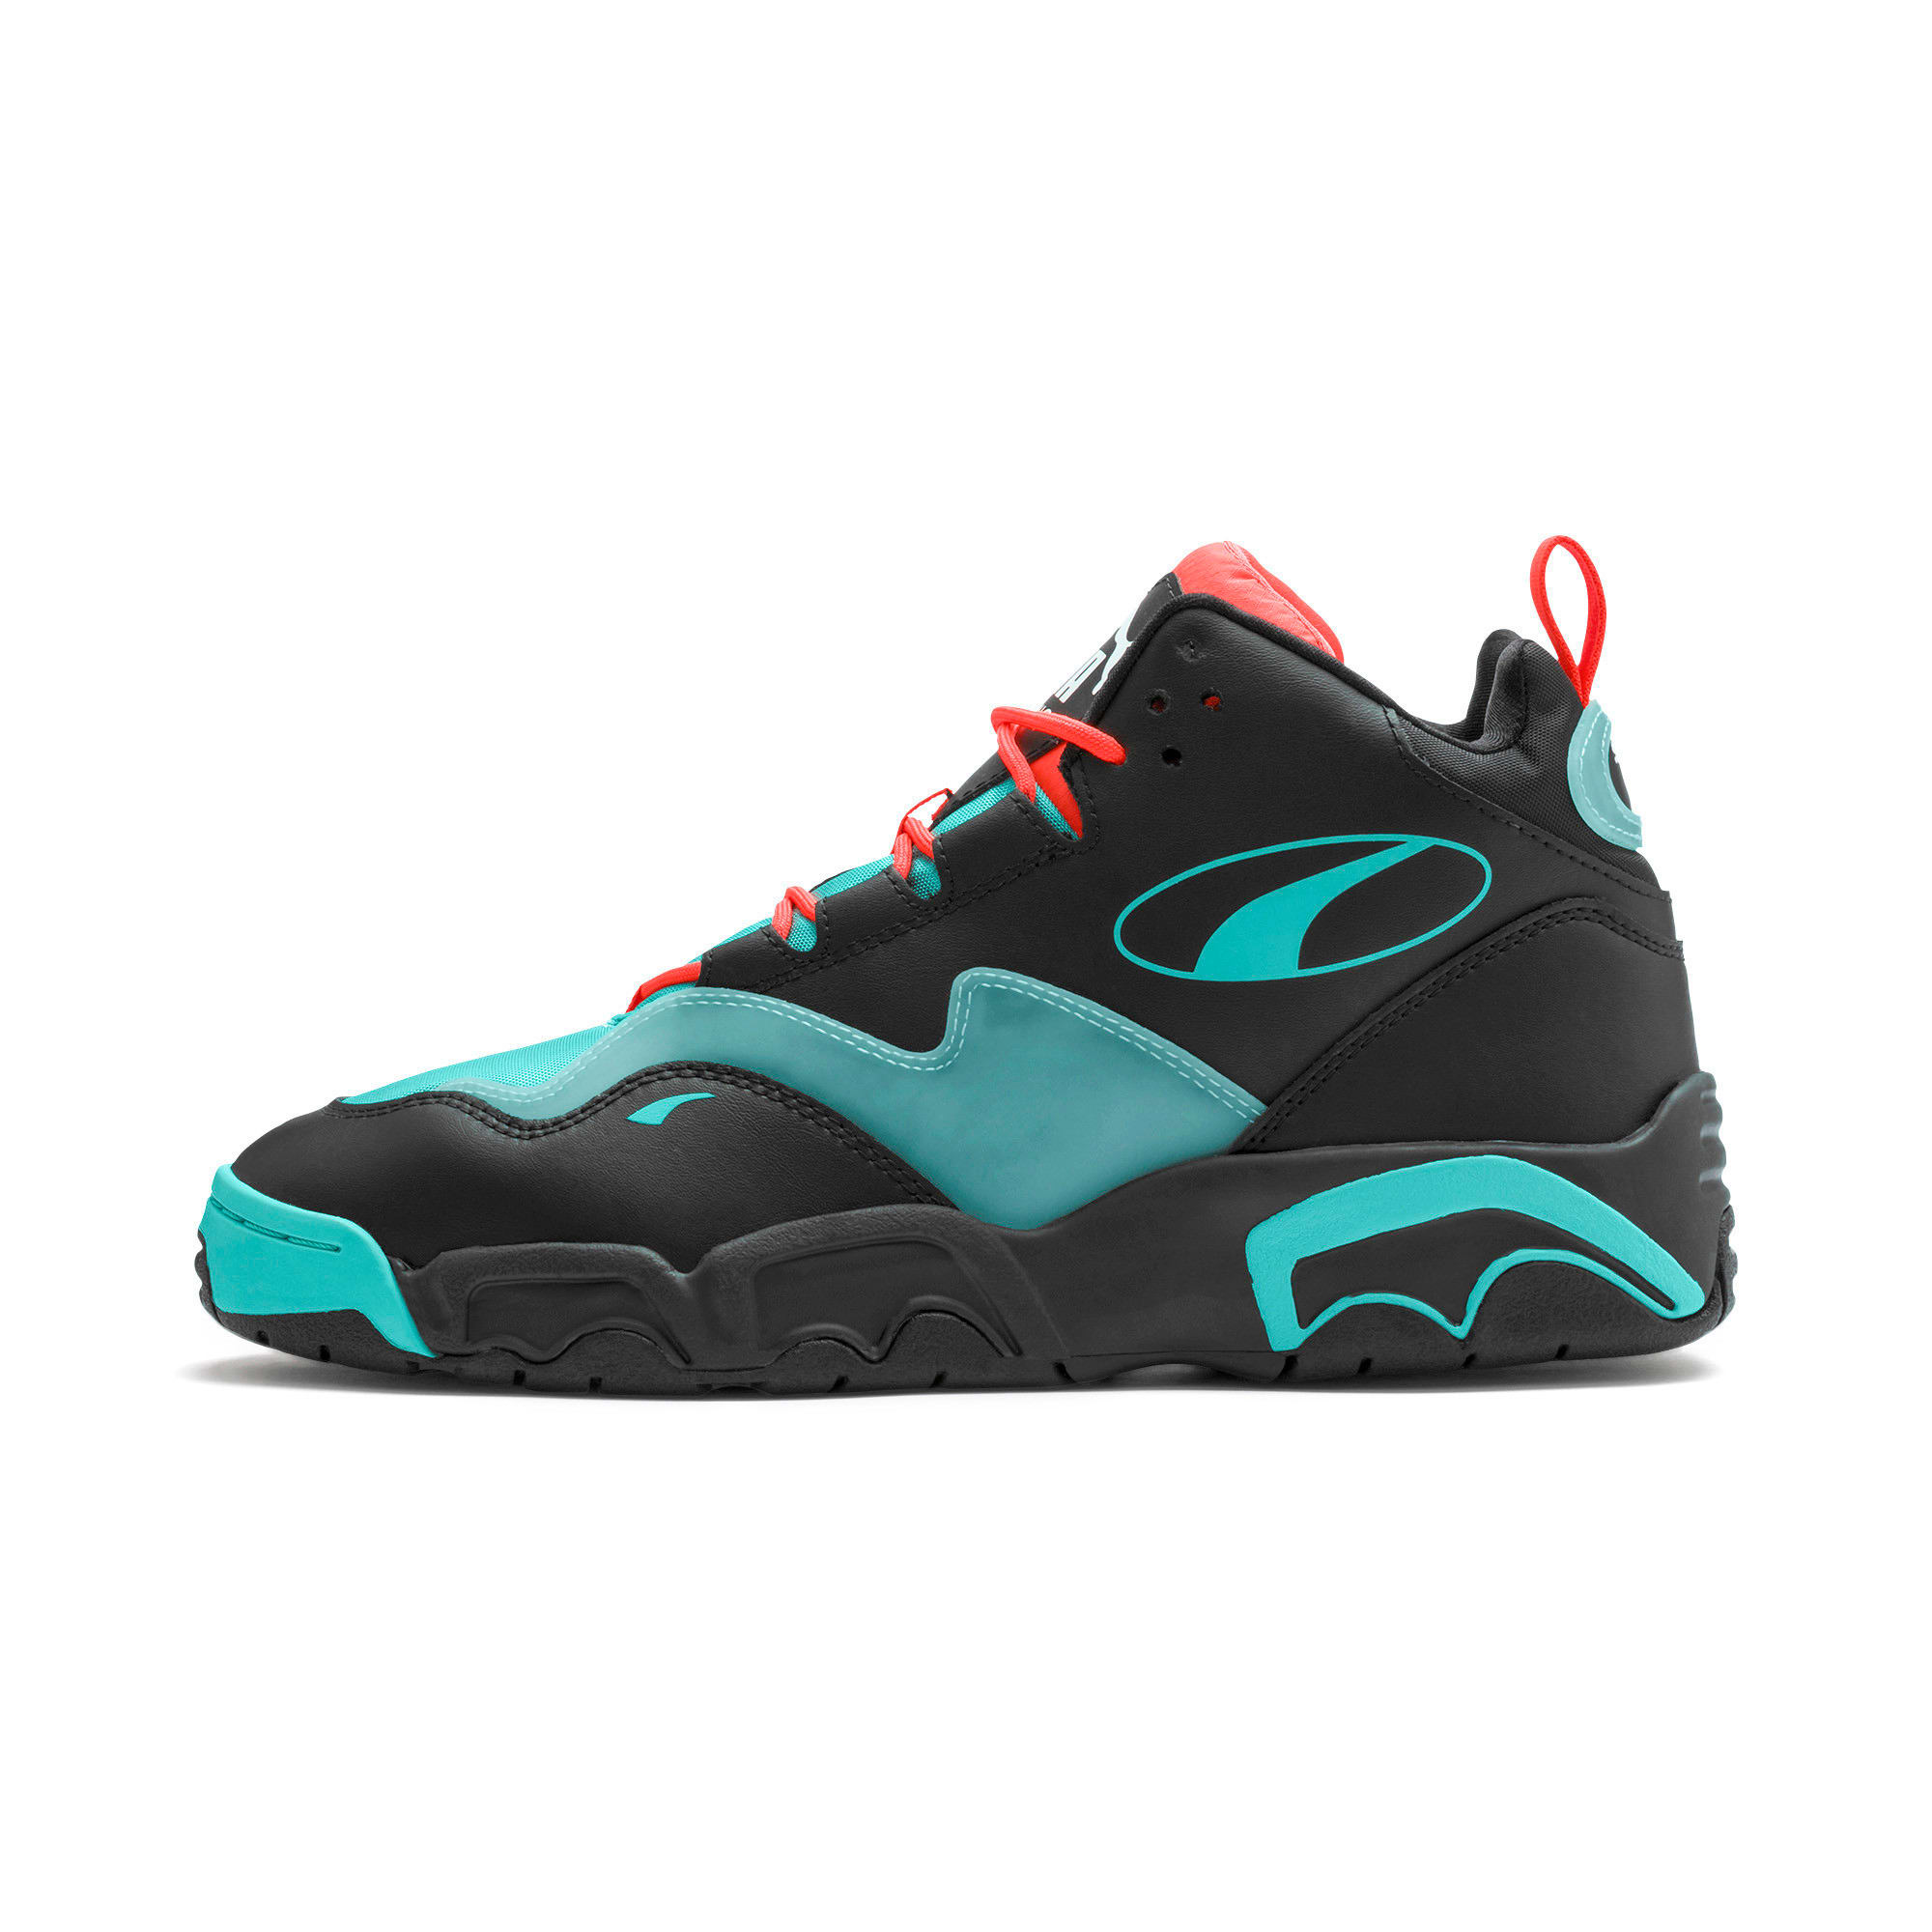 Thumbnail 1 of Source Mid Buzzer Sneakers, P Blk-Nrgy Red-BlueTurquoise, medium